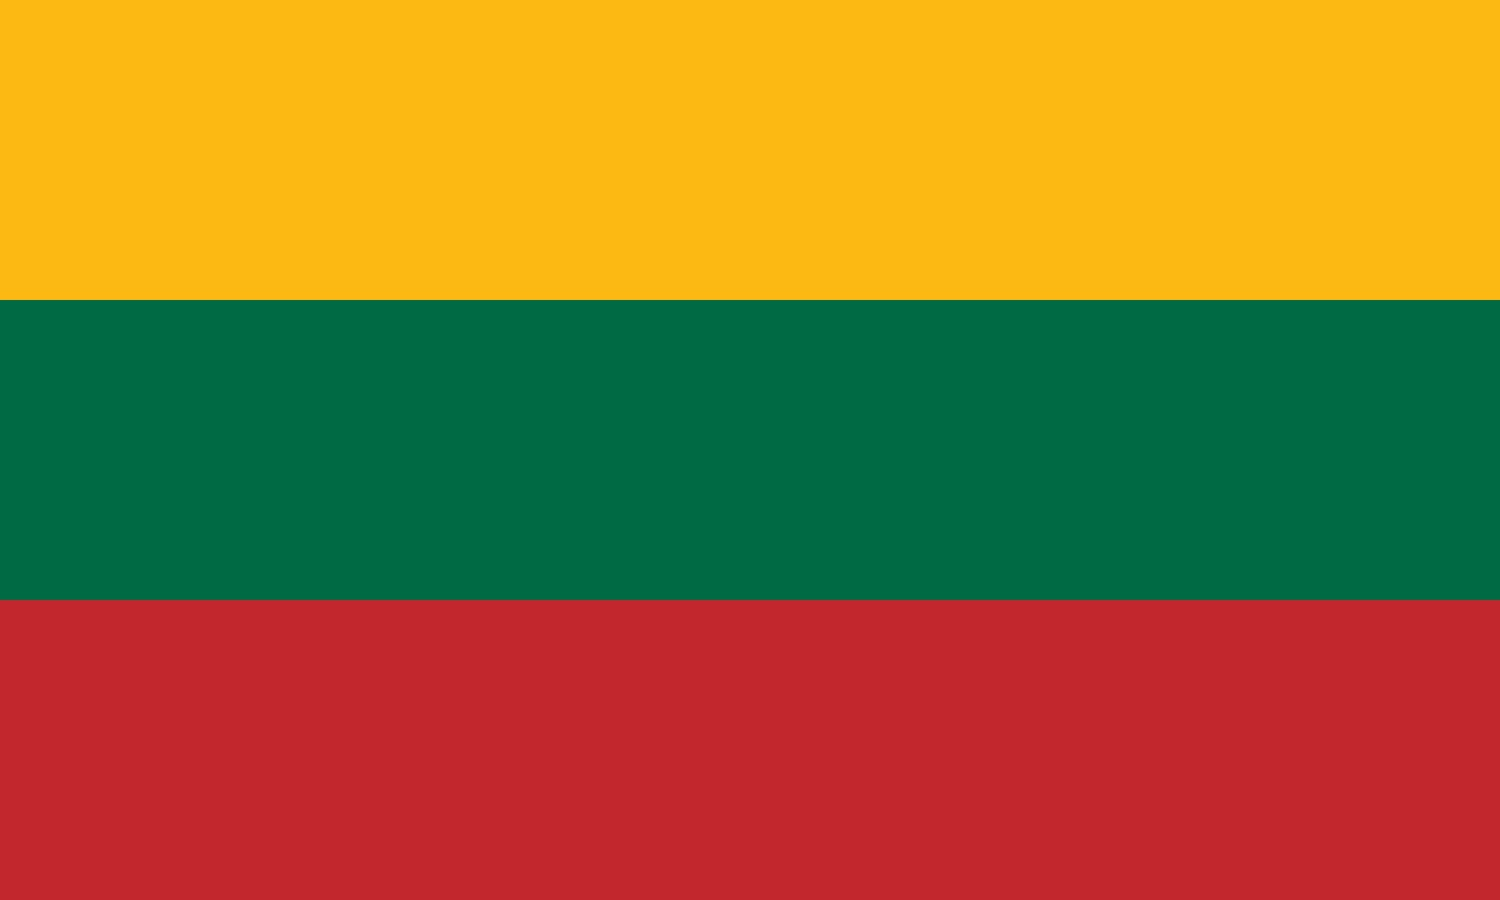 2000px_flag_of_lithuania_svg.jpg